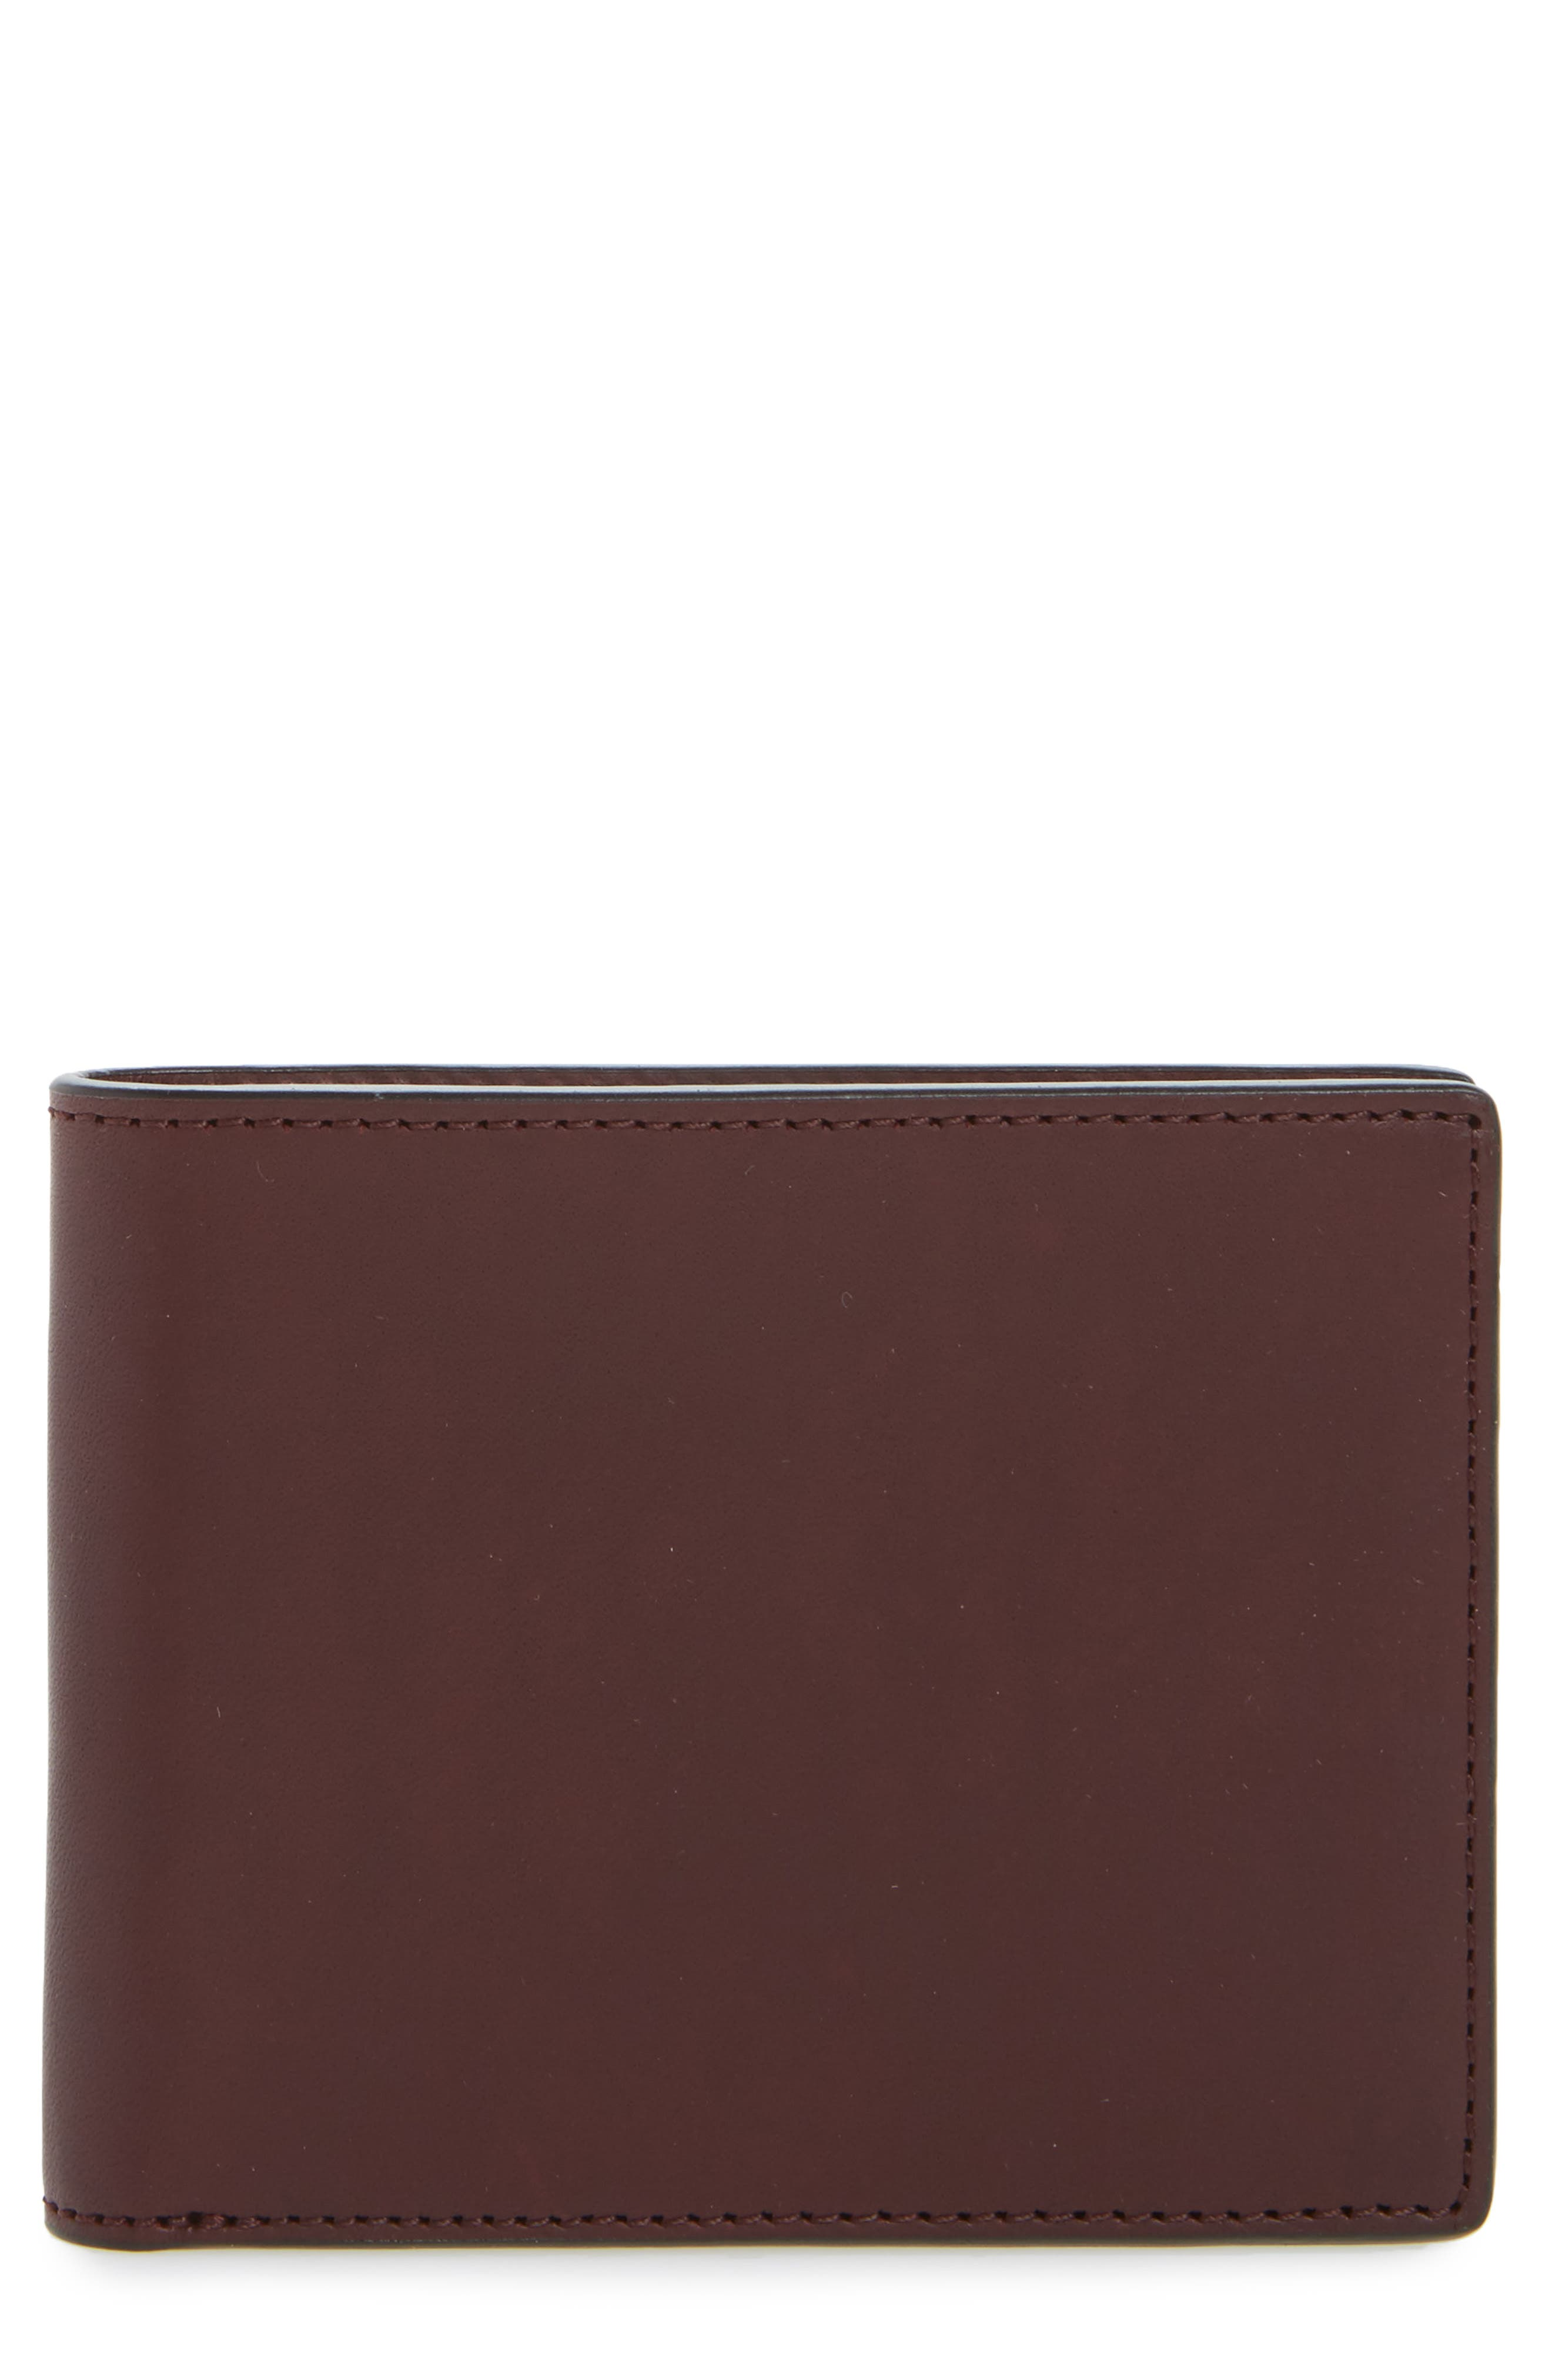 Hampshire Bifold Leather Wallet,                             Main thumbnail 1, color,                             Ox Blood